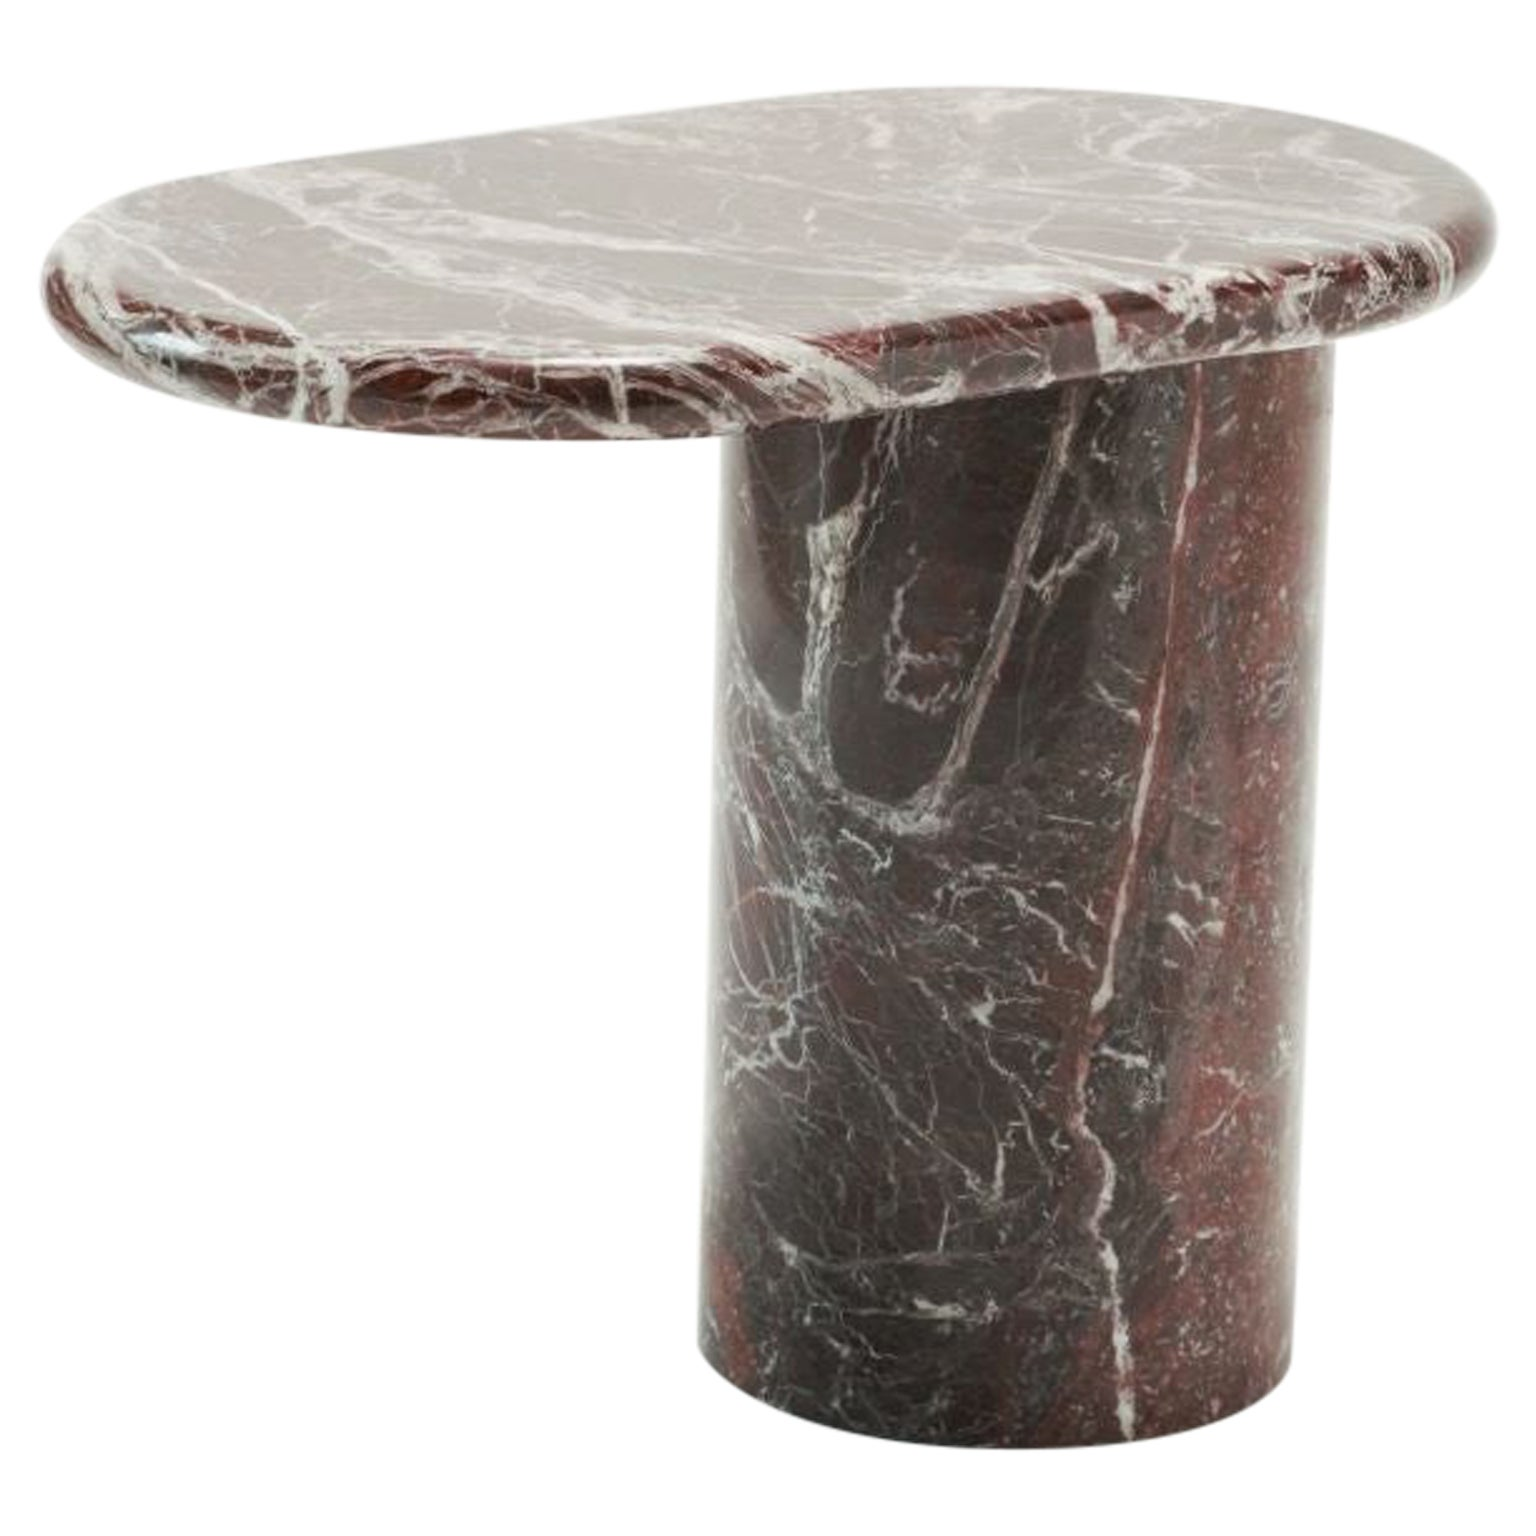 21st Century Matteo Zorzenoni Side Coffee Table Marble Red